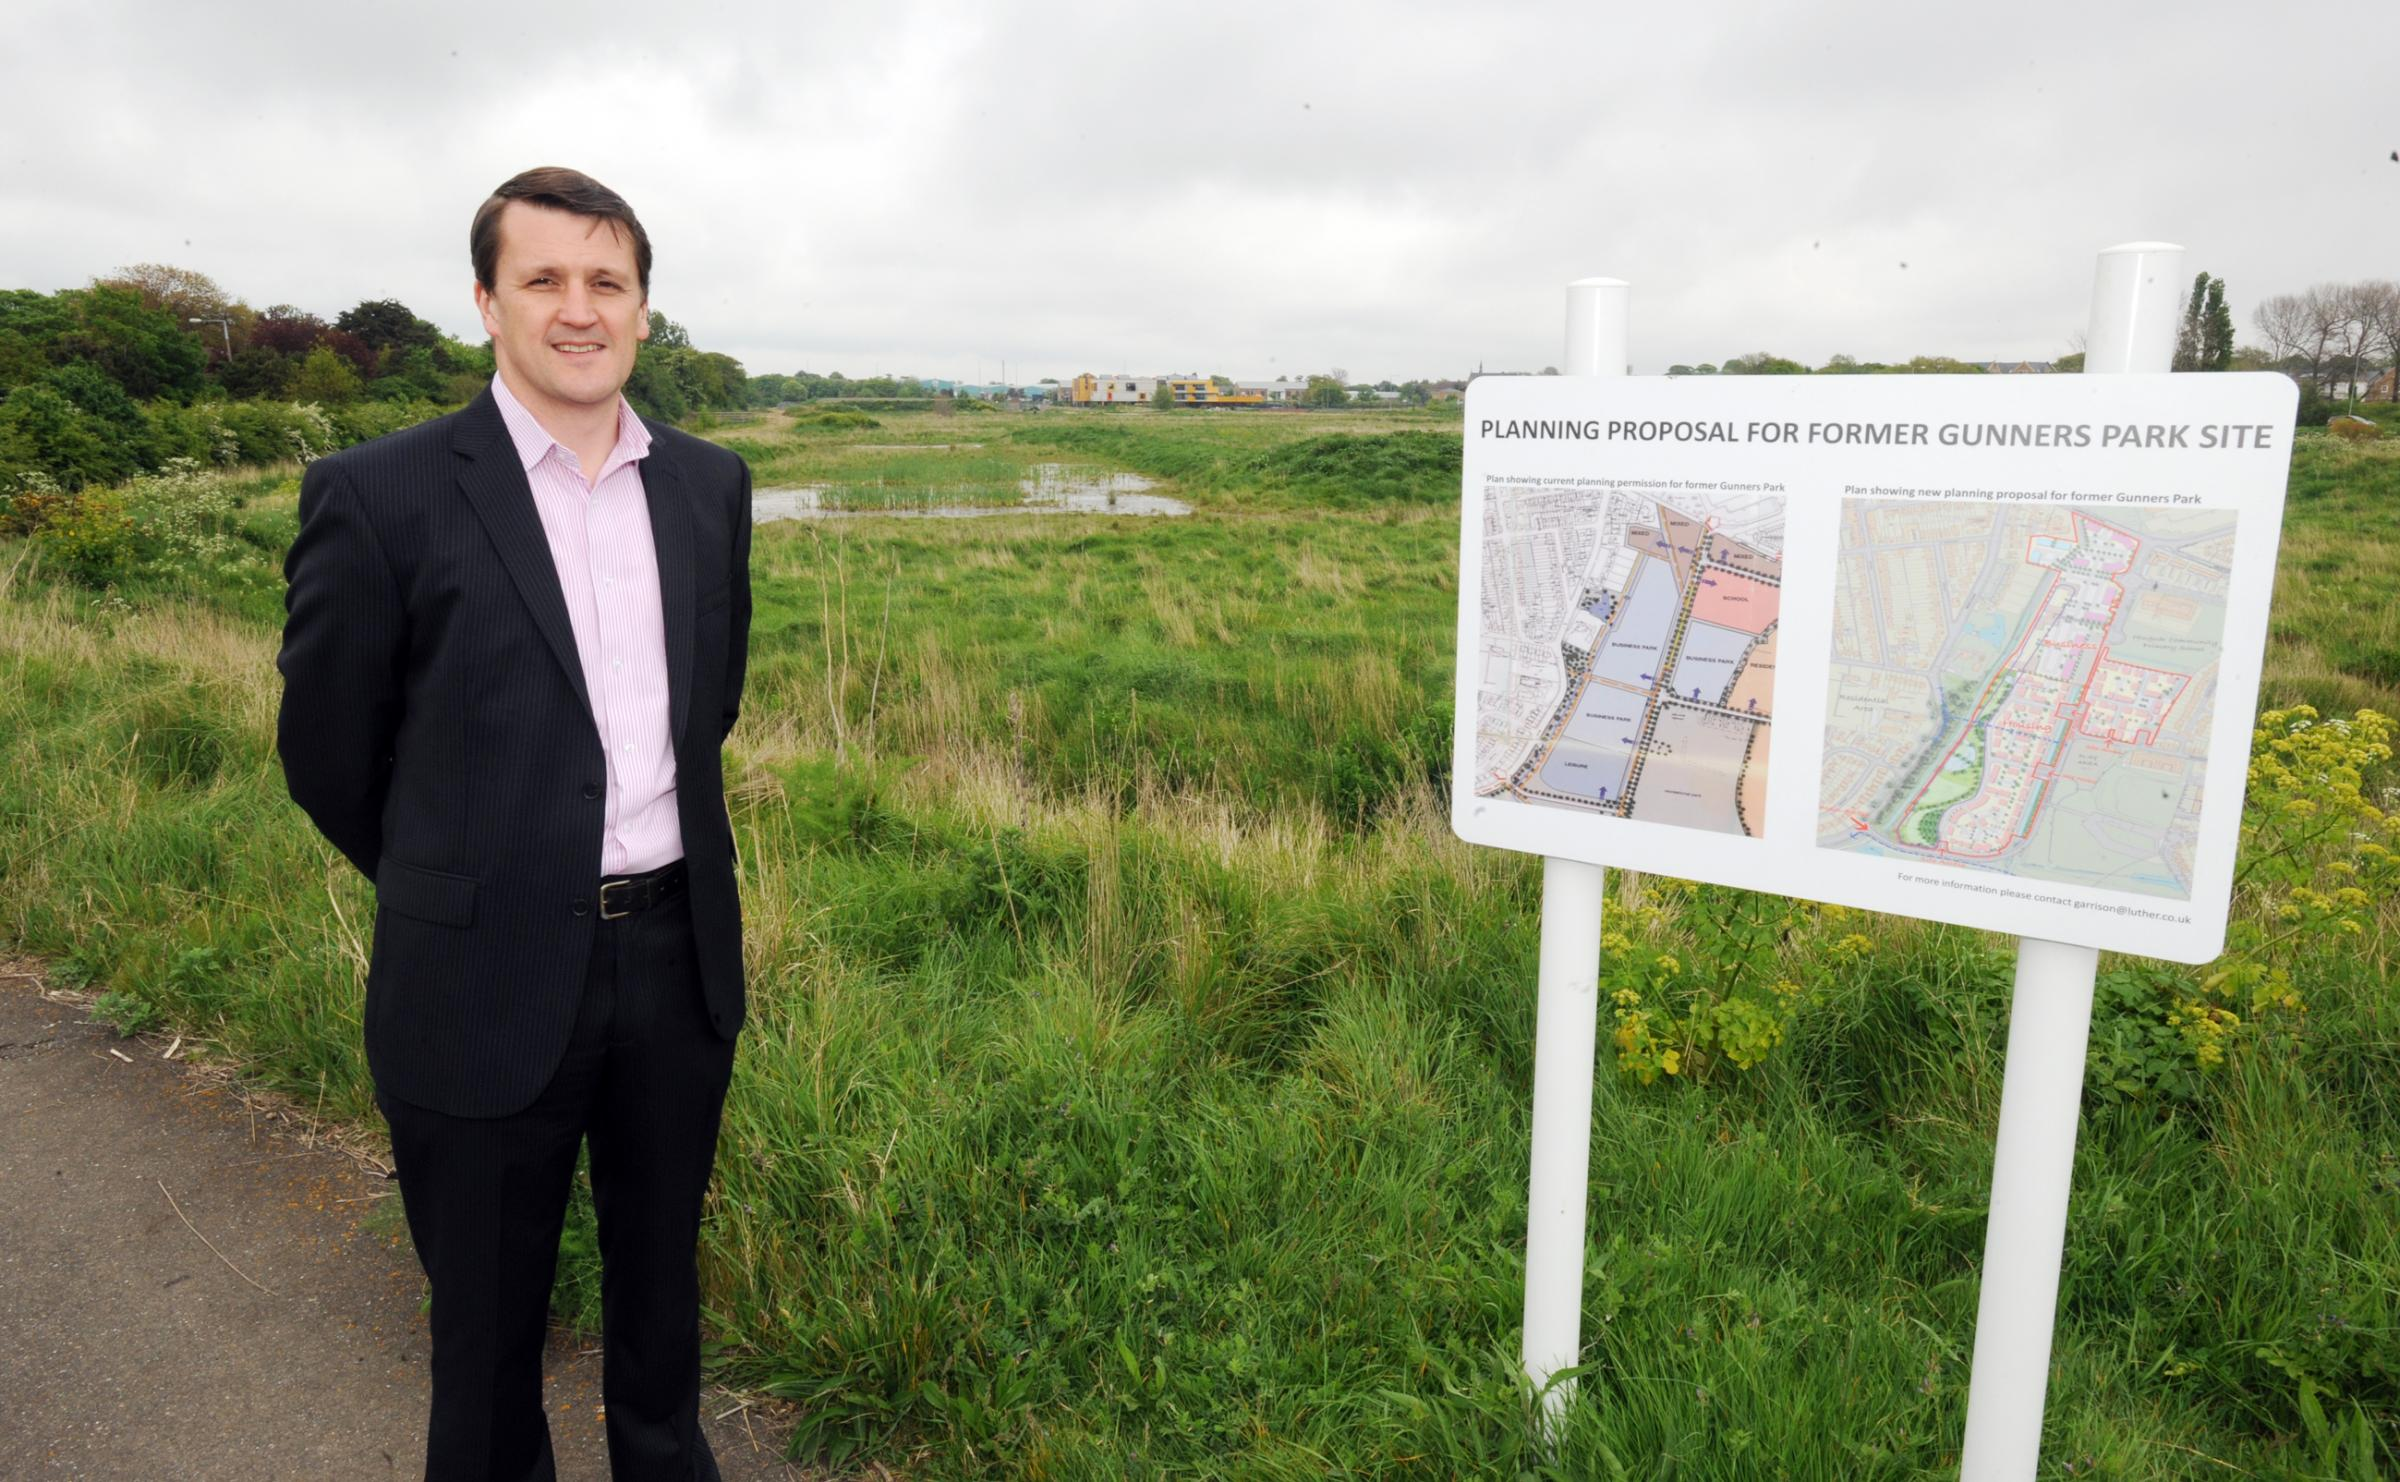 172 homes plan for Shoebury Garrison